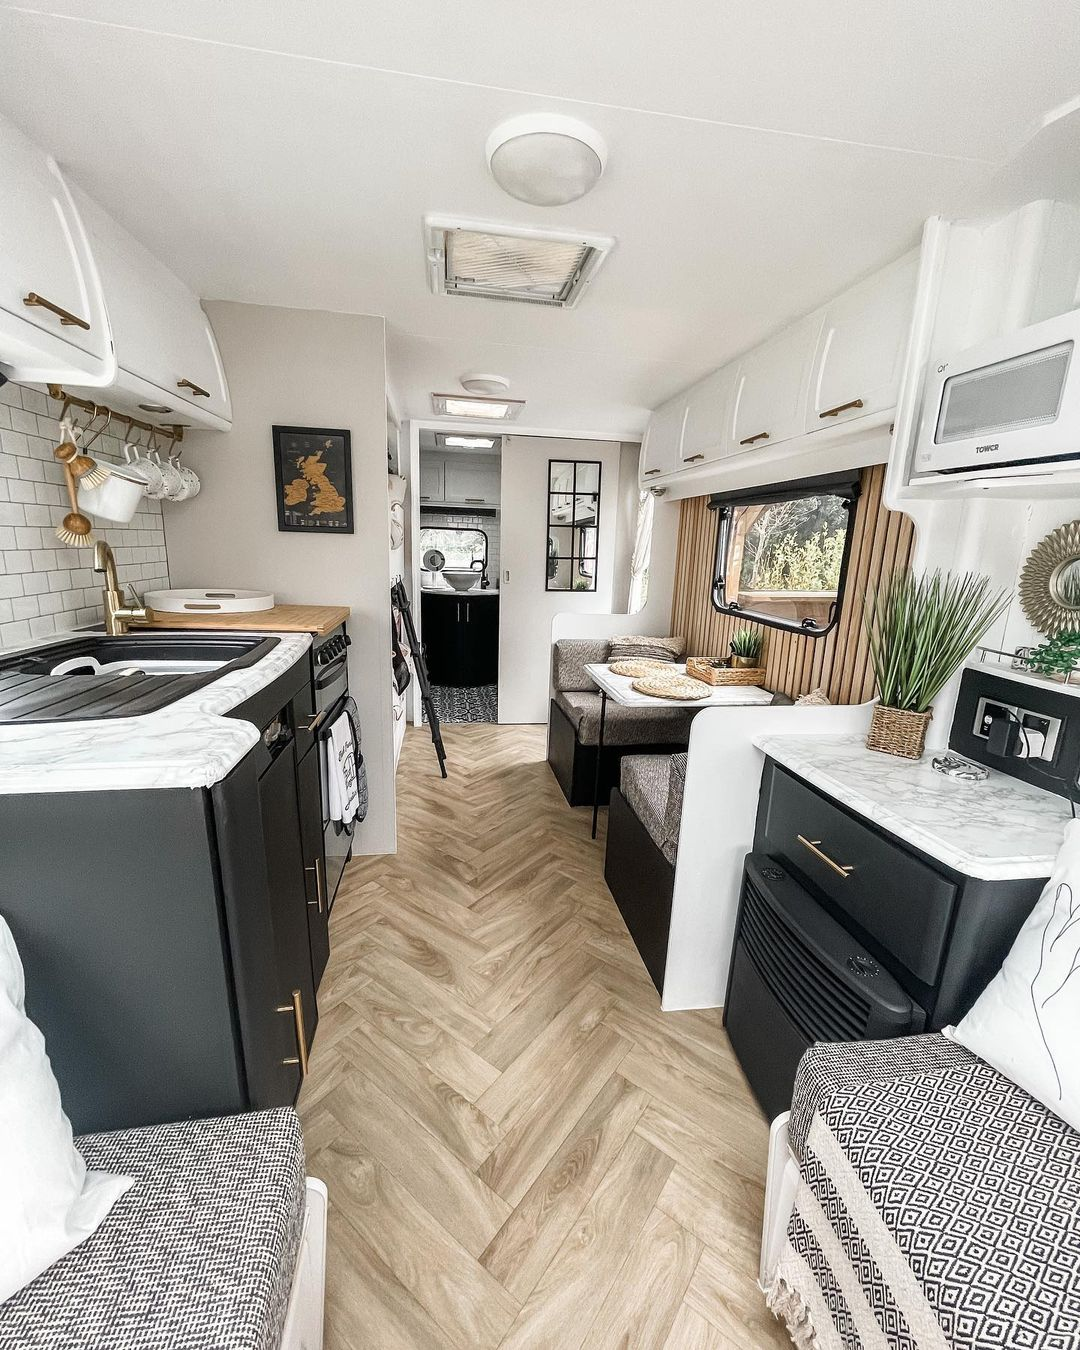 Interior of a renovated caravan with black cabinets and neutral decor.